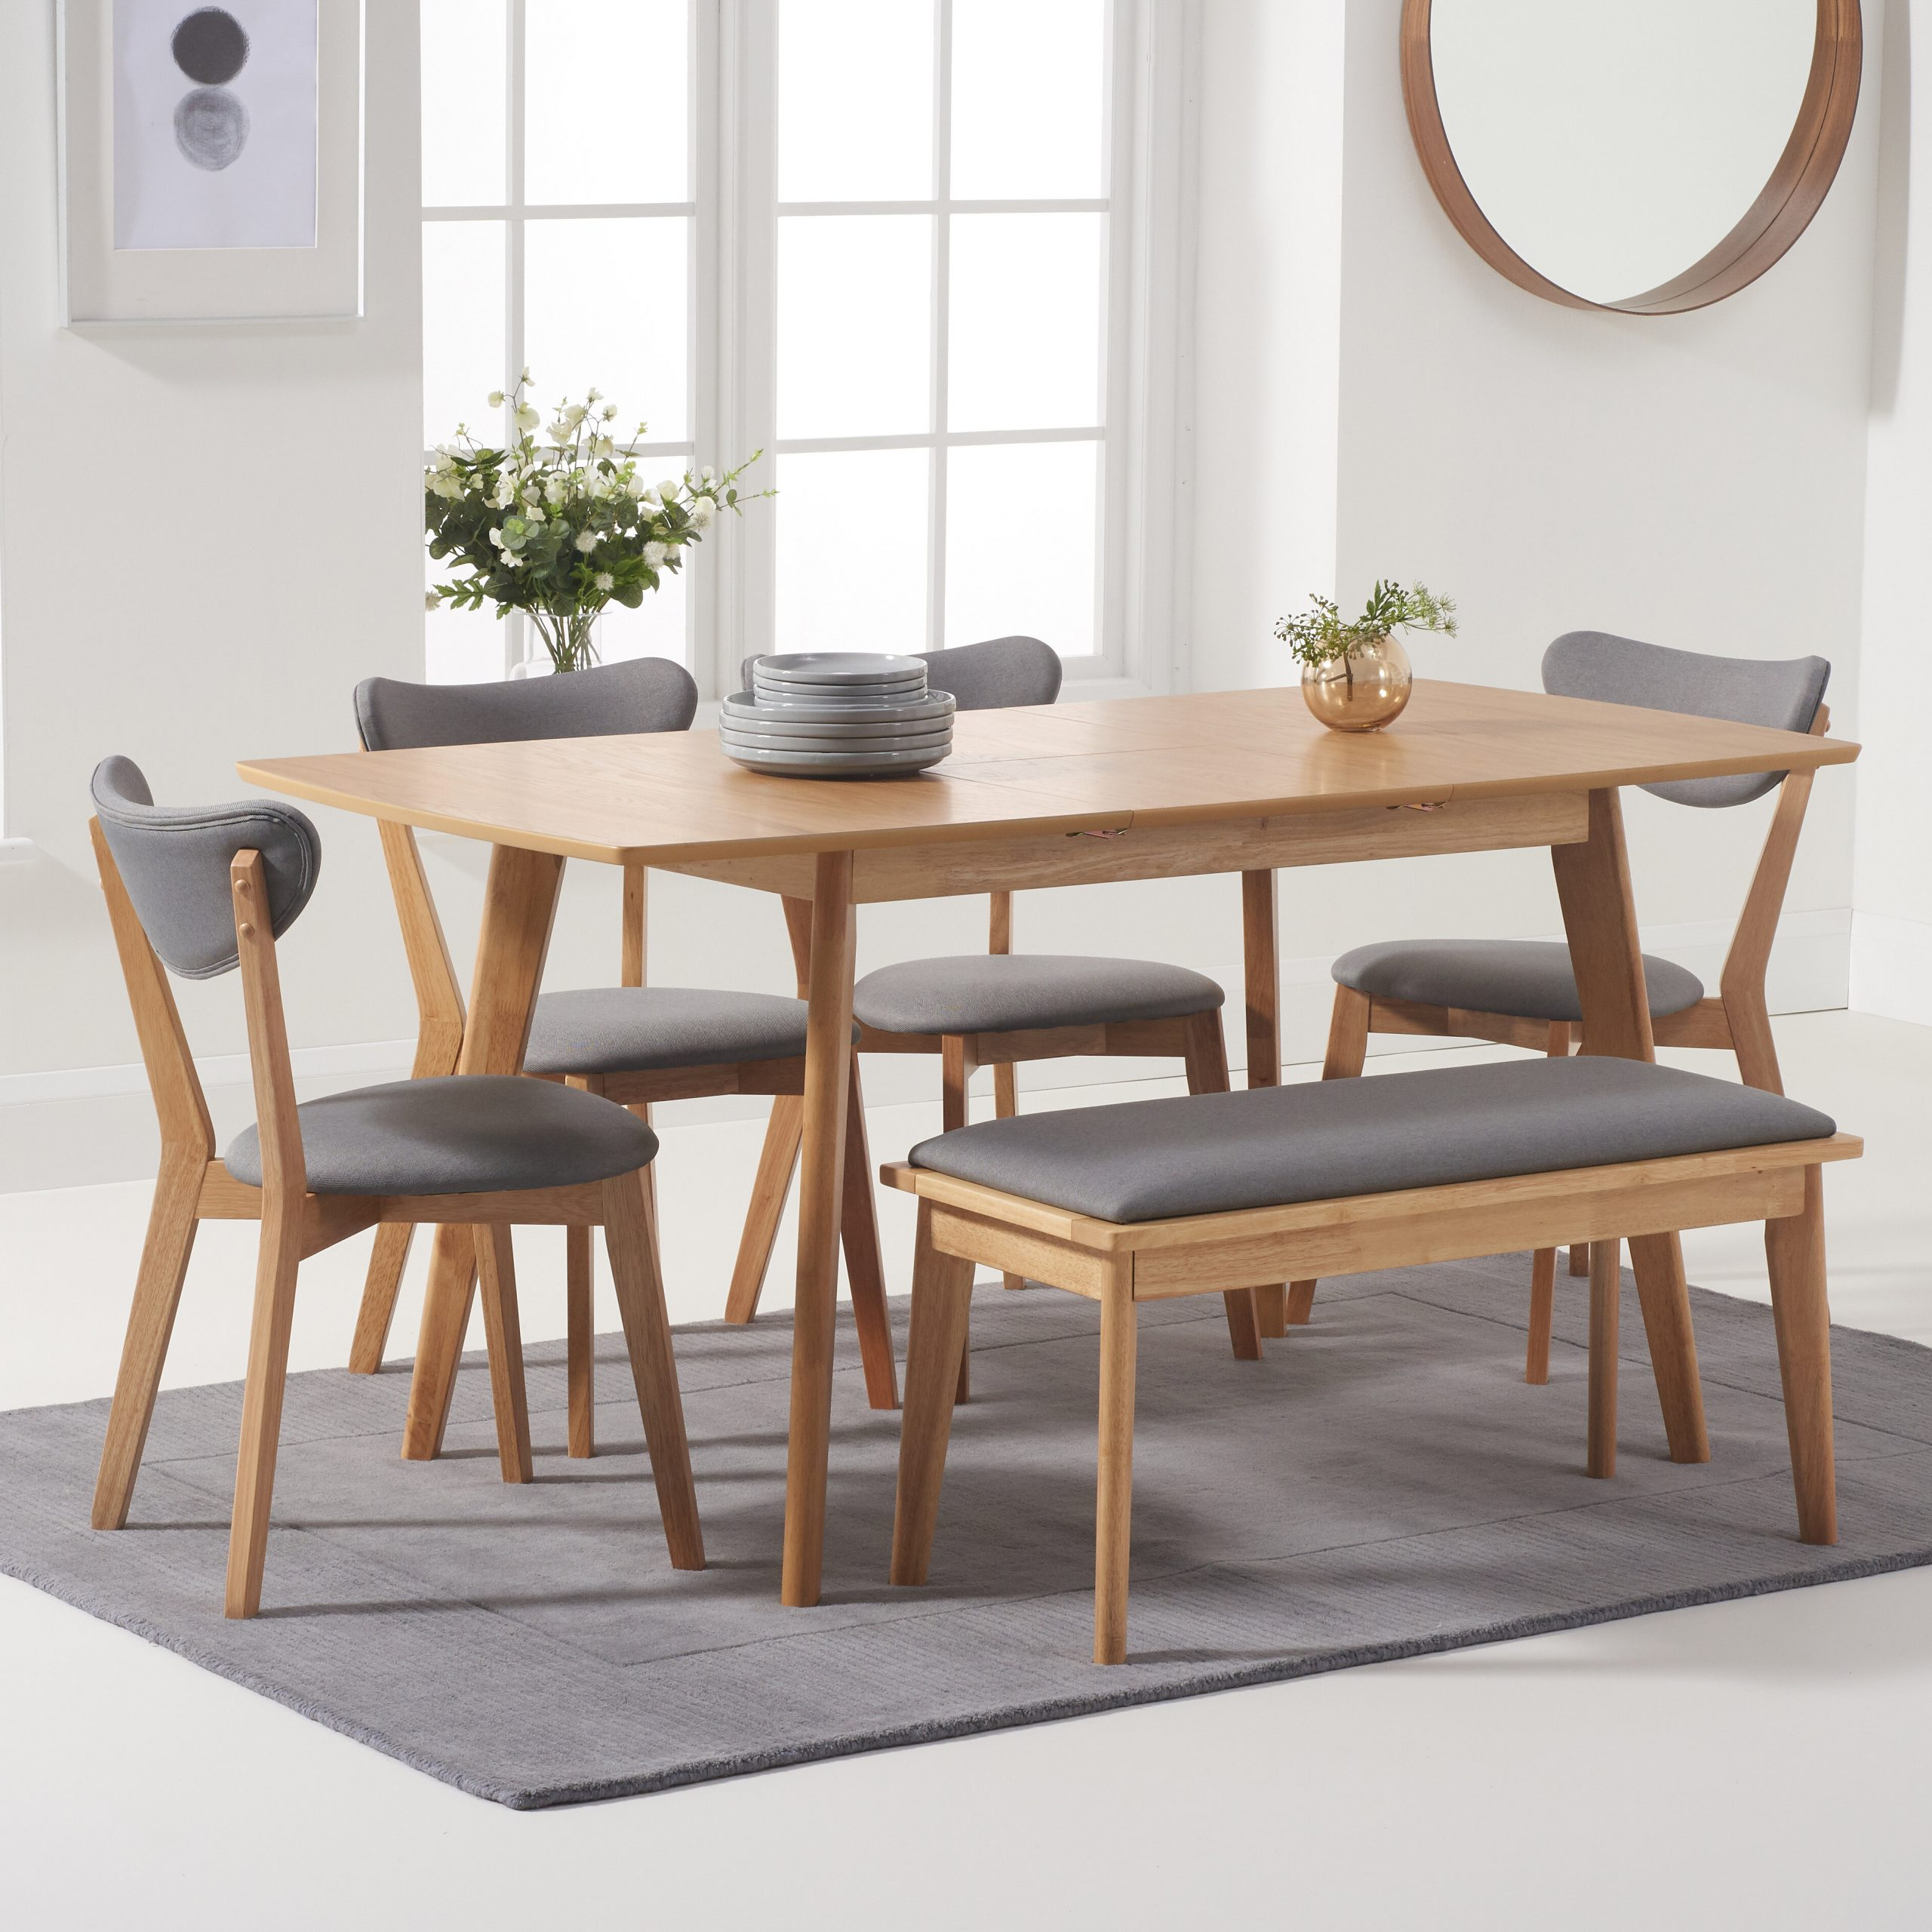 Ideas About Extending Dining Bench, – Howellmagic Dining With Regard To Current Blackened Oak Benchwright Extending Dining Tables (View 17 of 25)